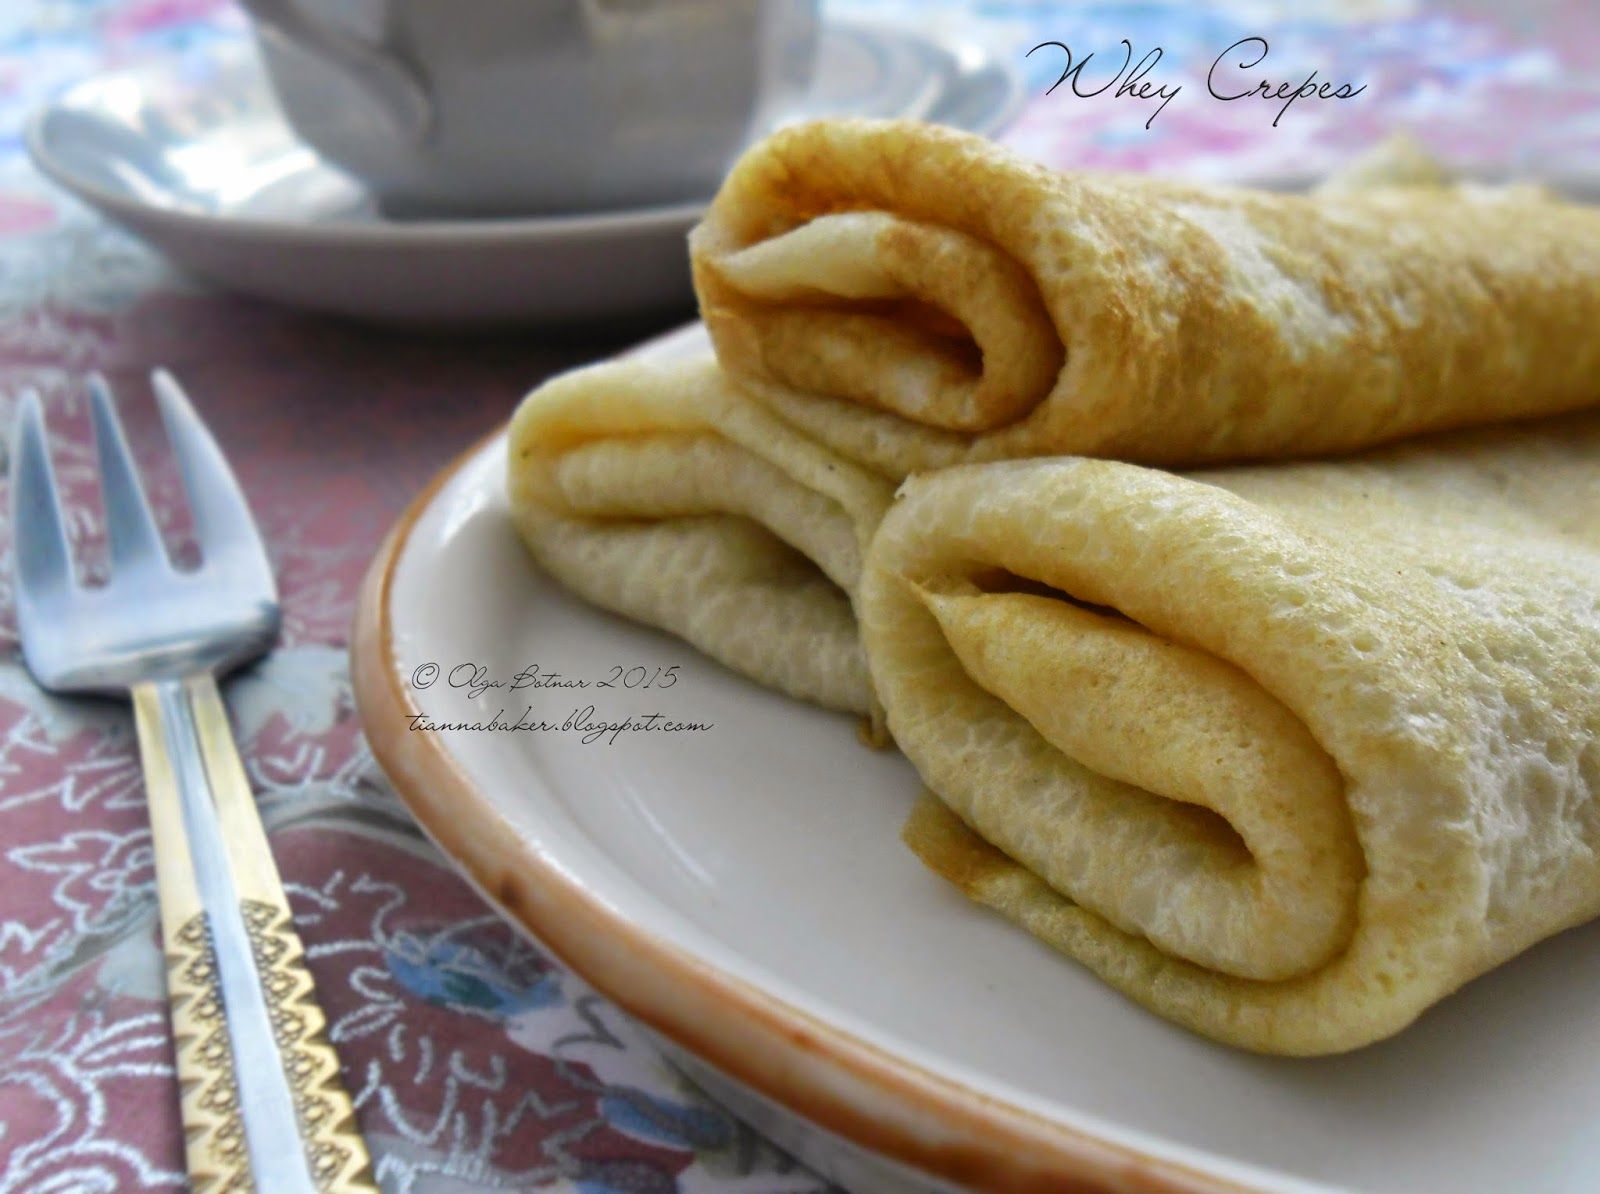 Whey crepes recipe